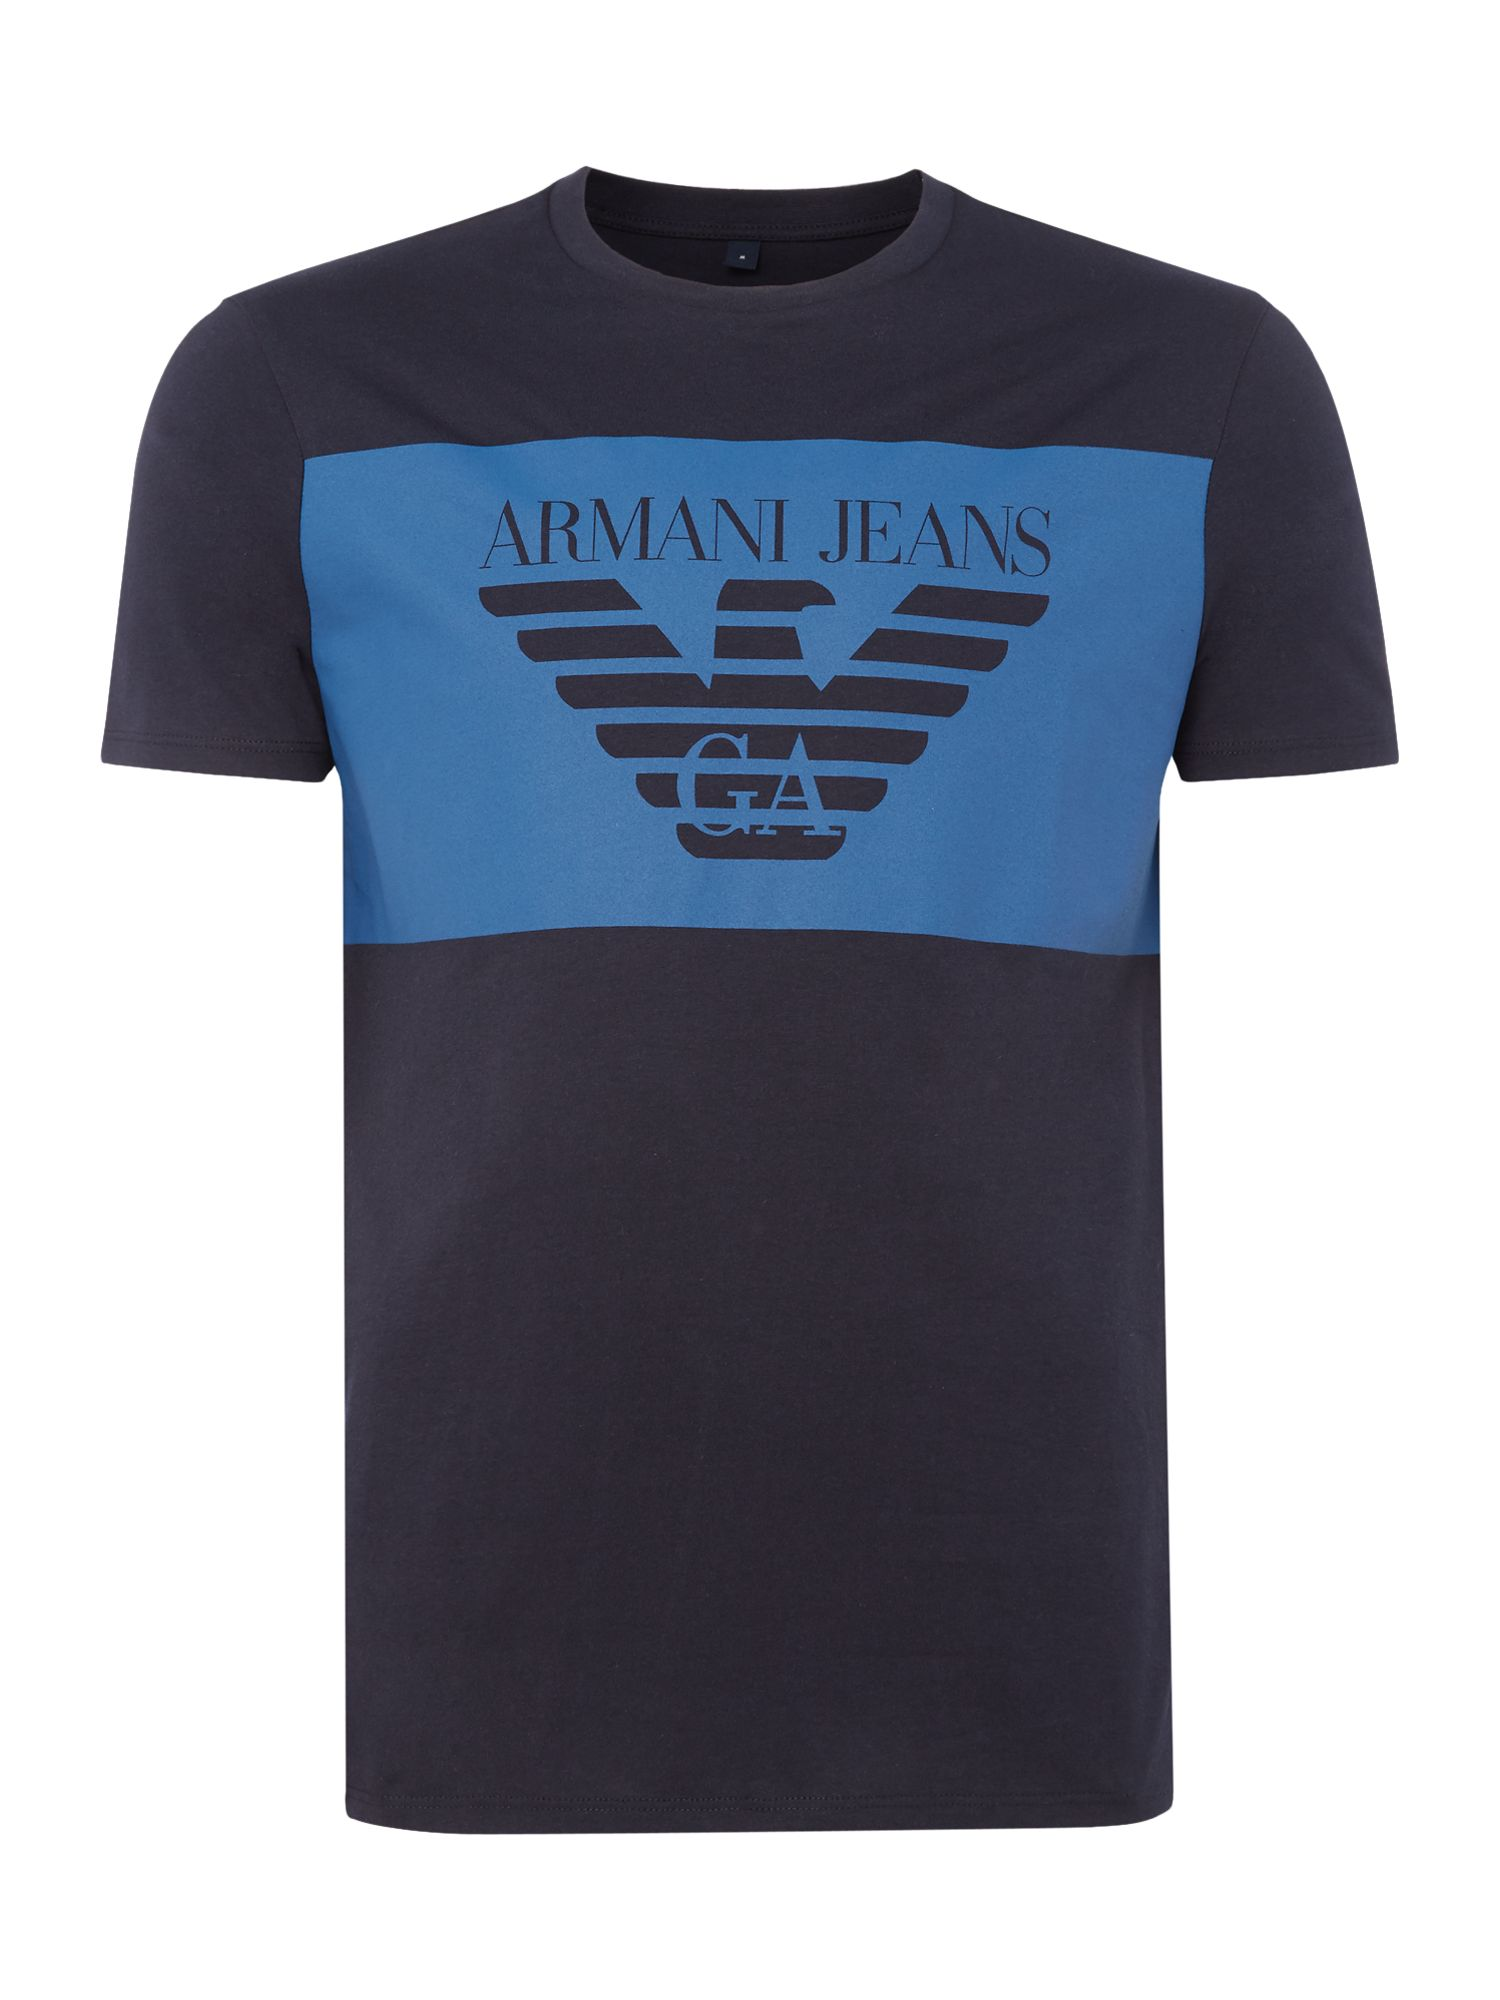 Mens Armani Jeans Regular fit large chest banner logo tshirt Navy